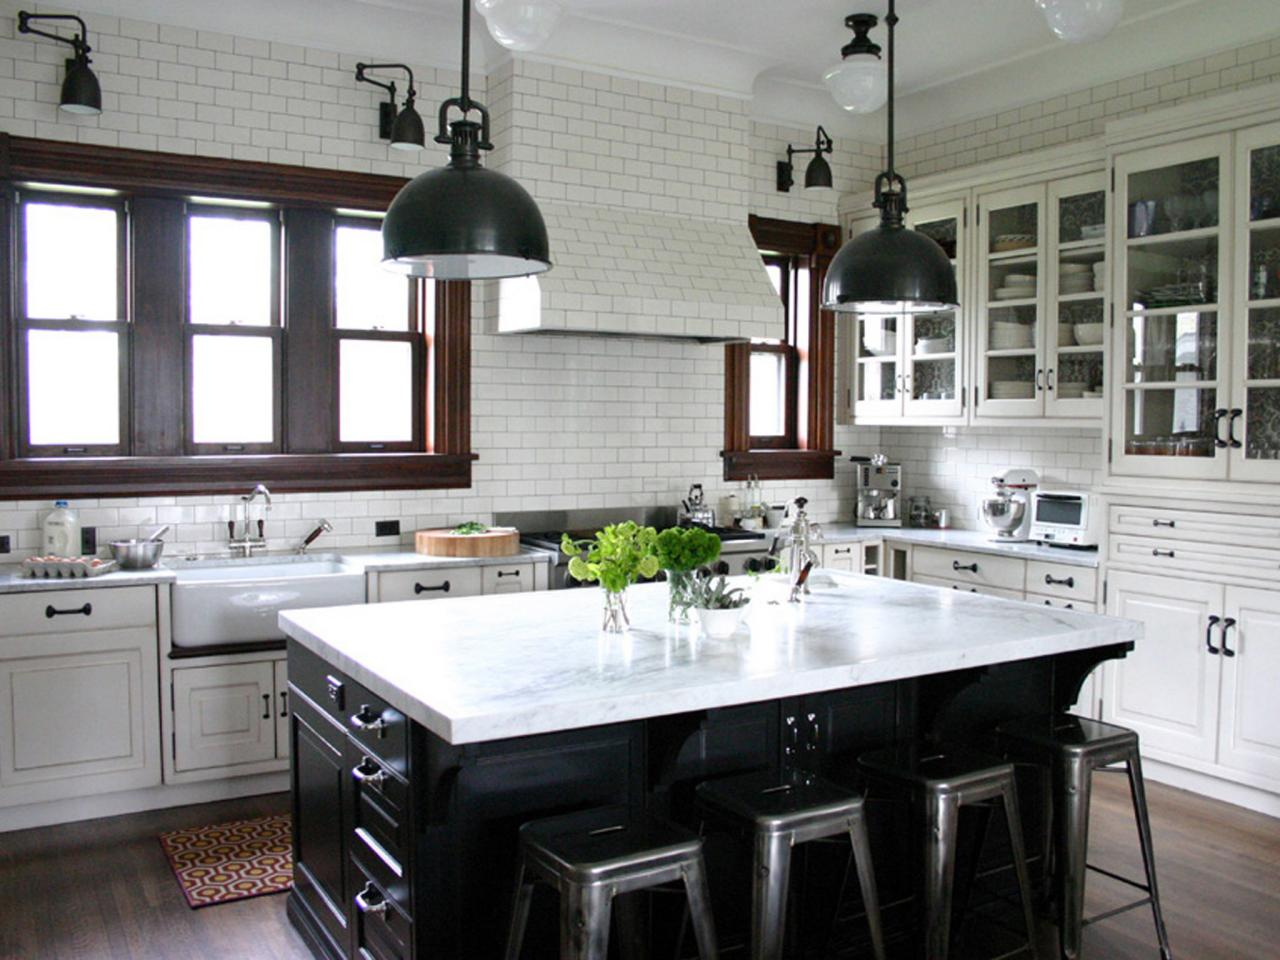 French Kitchens french kitchen design: pictures, ideas & tips from hgtv | hgtv